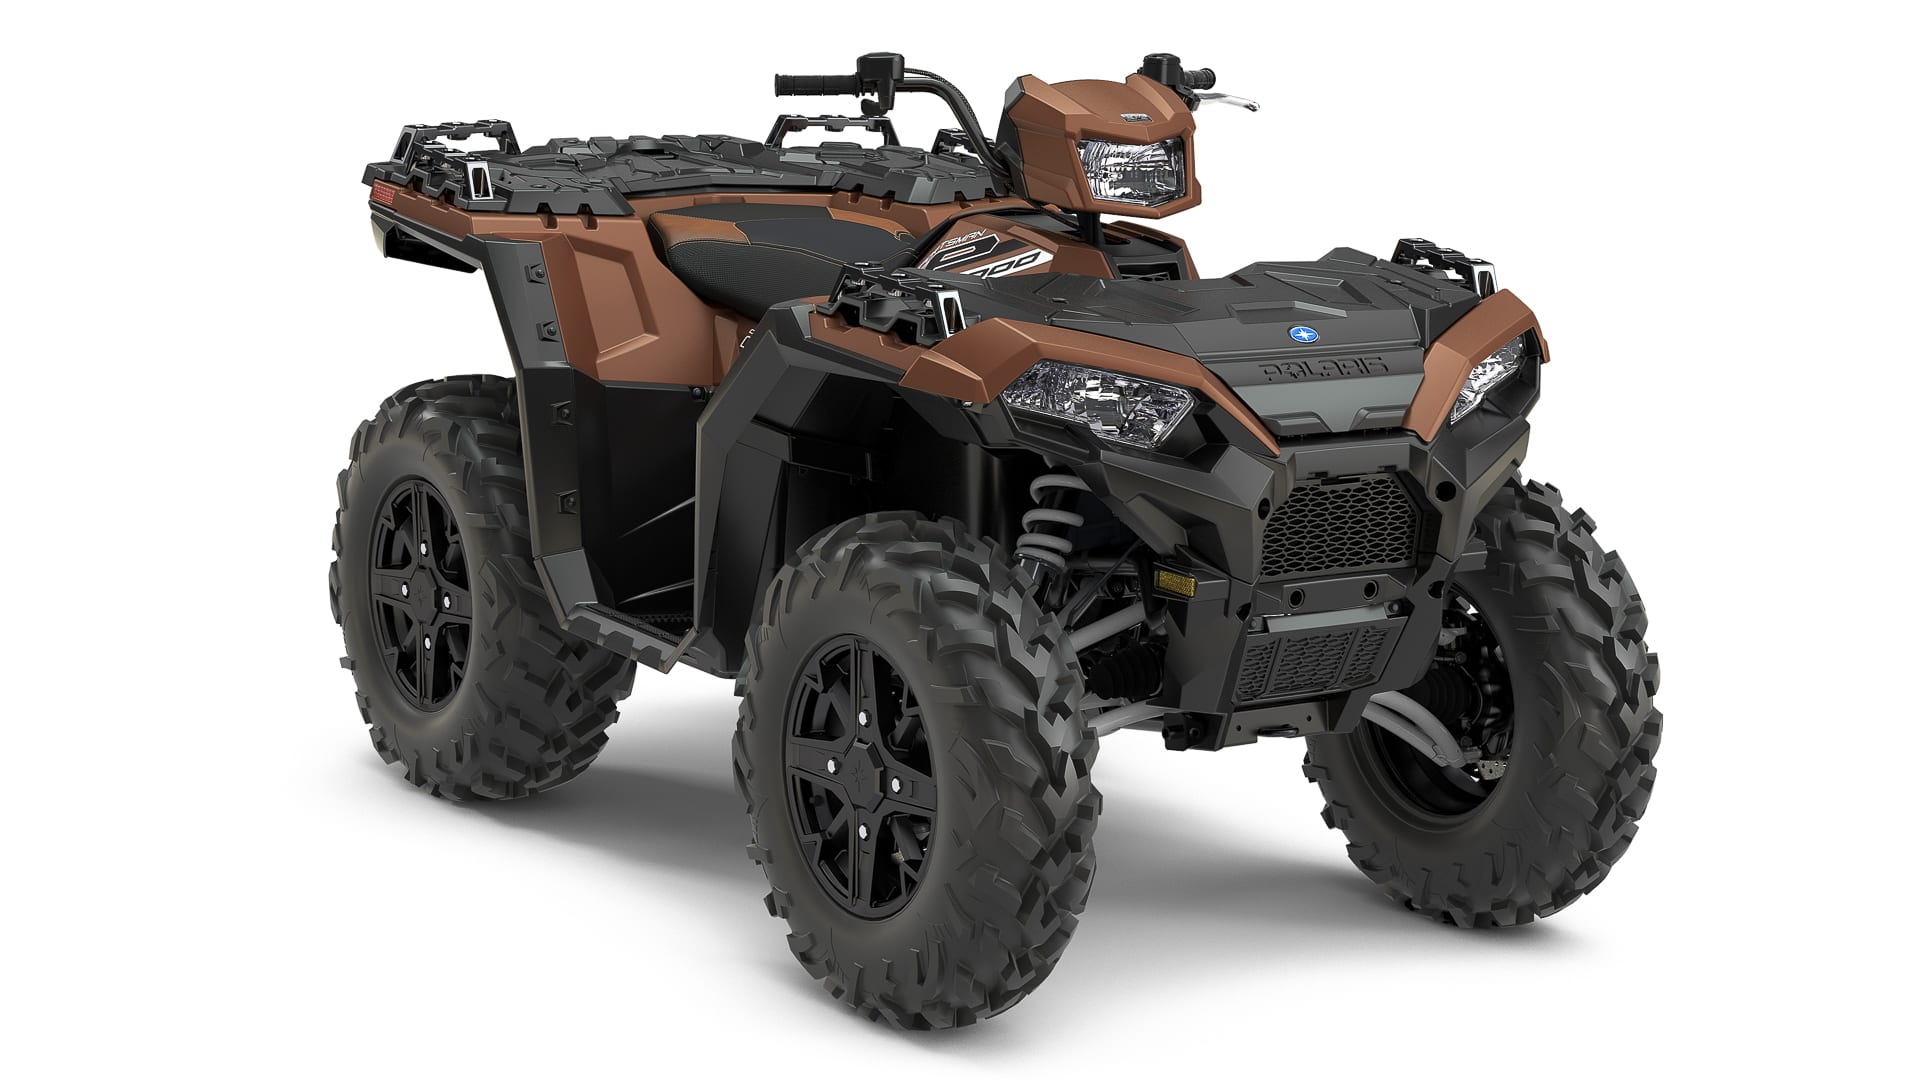 2018 polaris sportsman atv lineup atv trail rider magazine. Black Bedroom Furniture Sets. Home Design Ideas